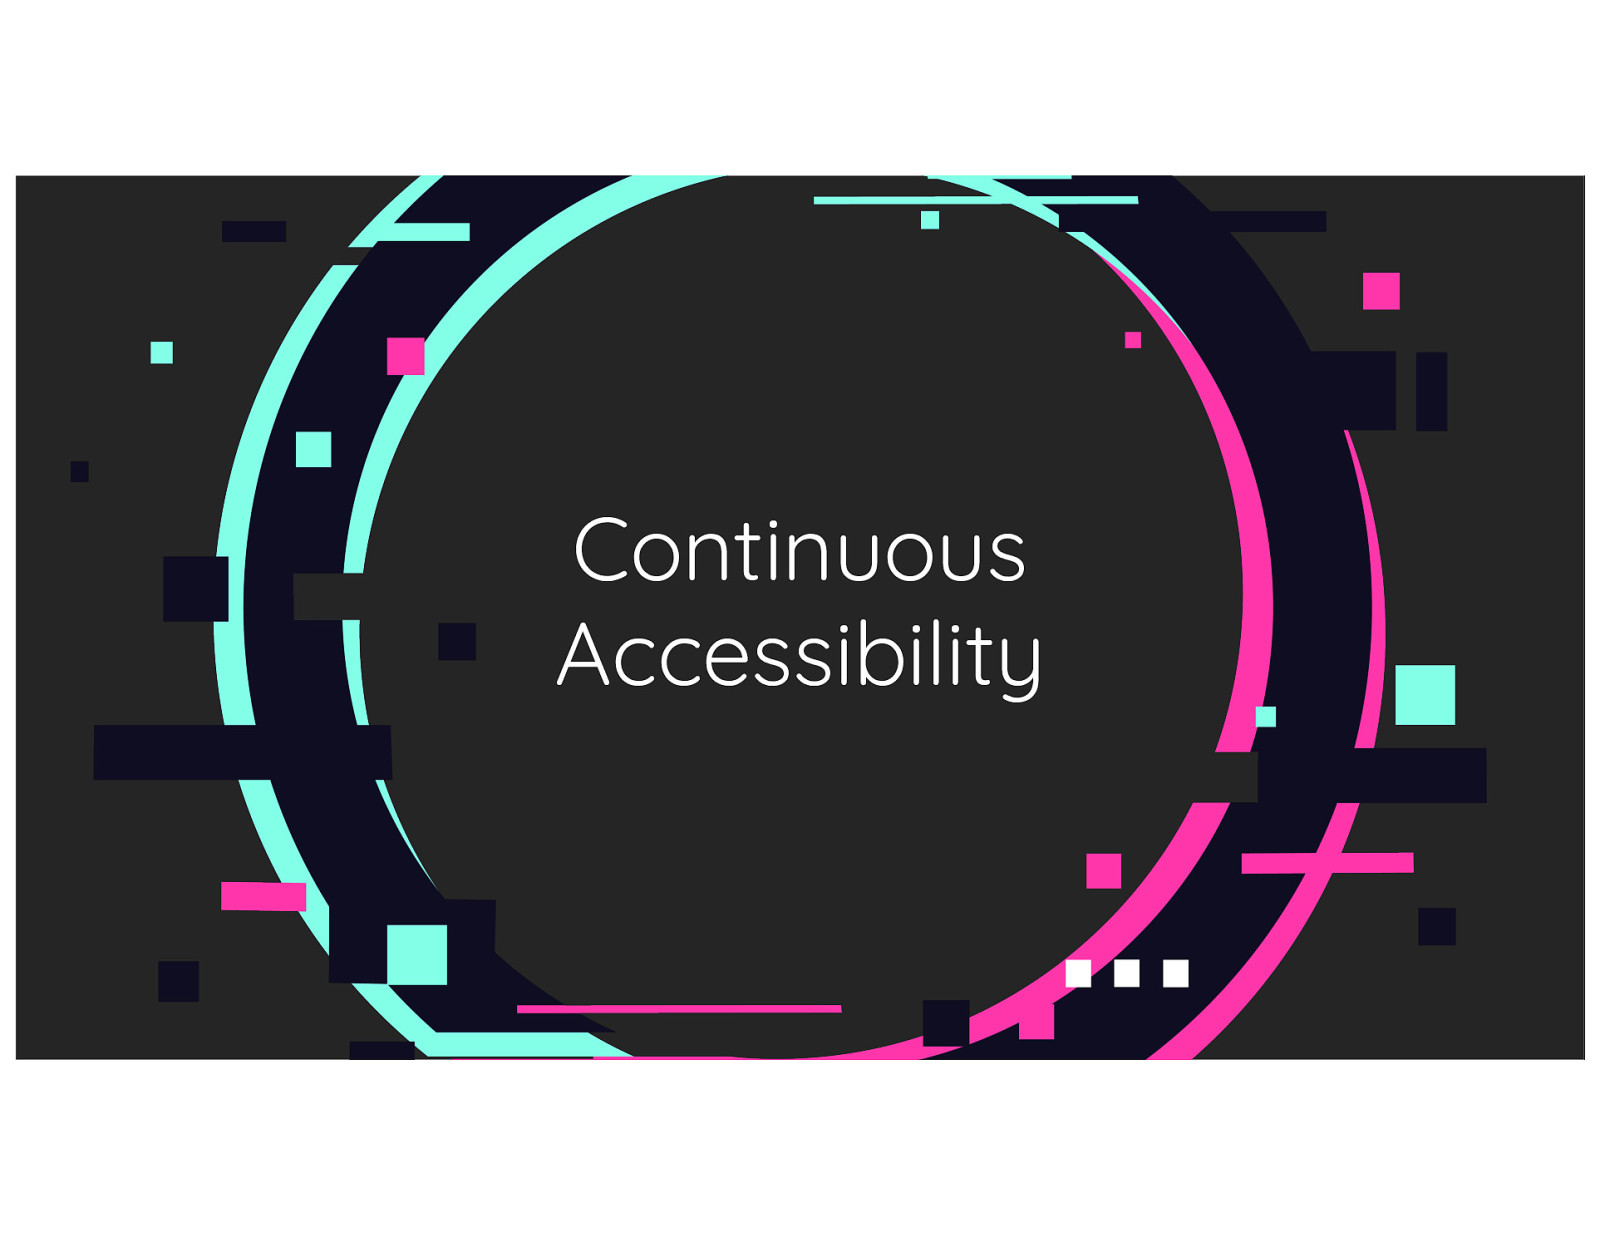 Continuous Accessibility